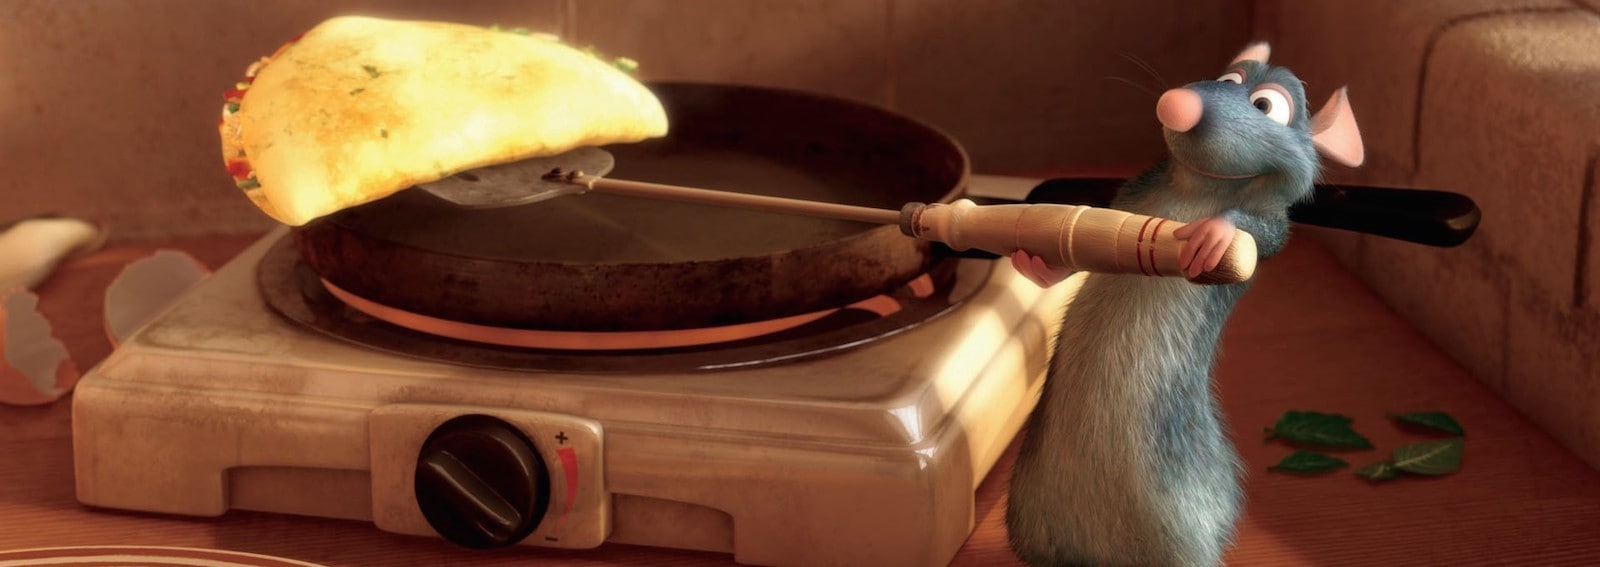 Rataouille crepes